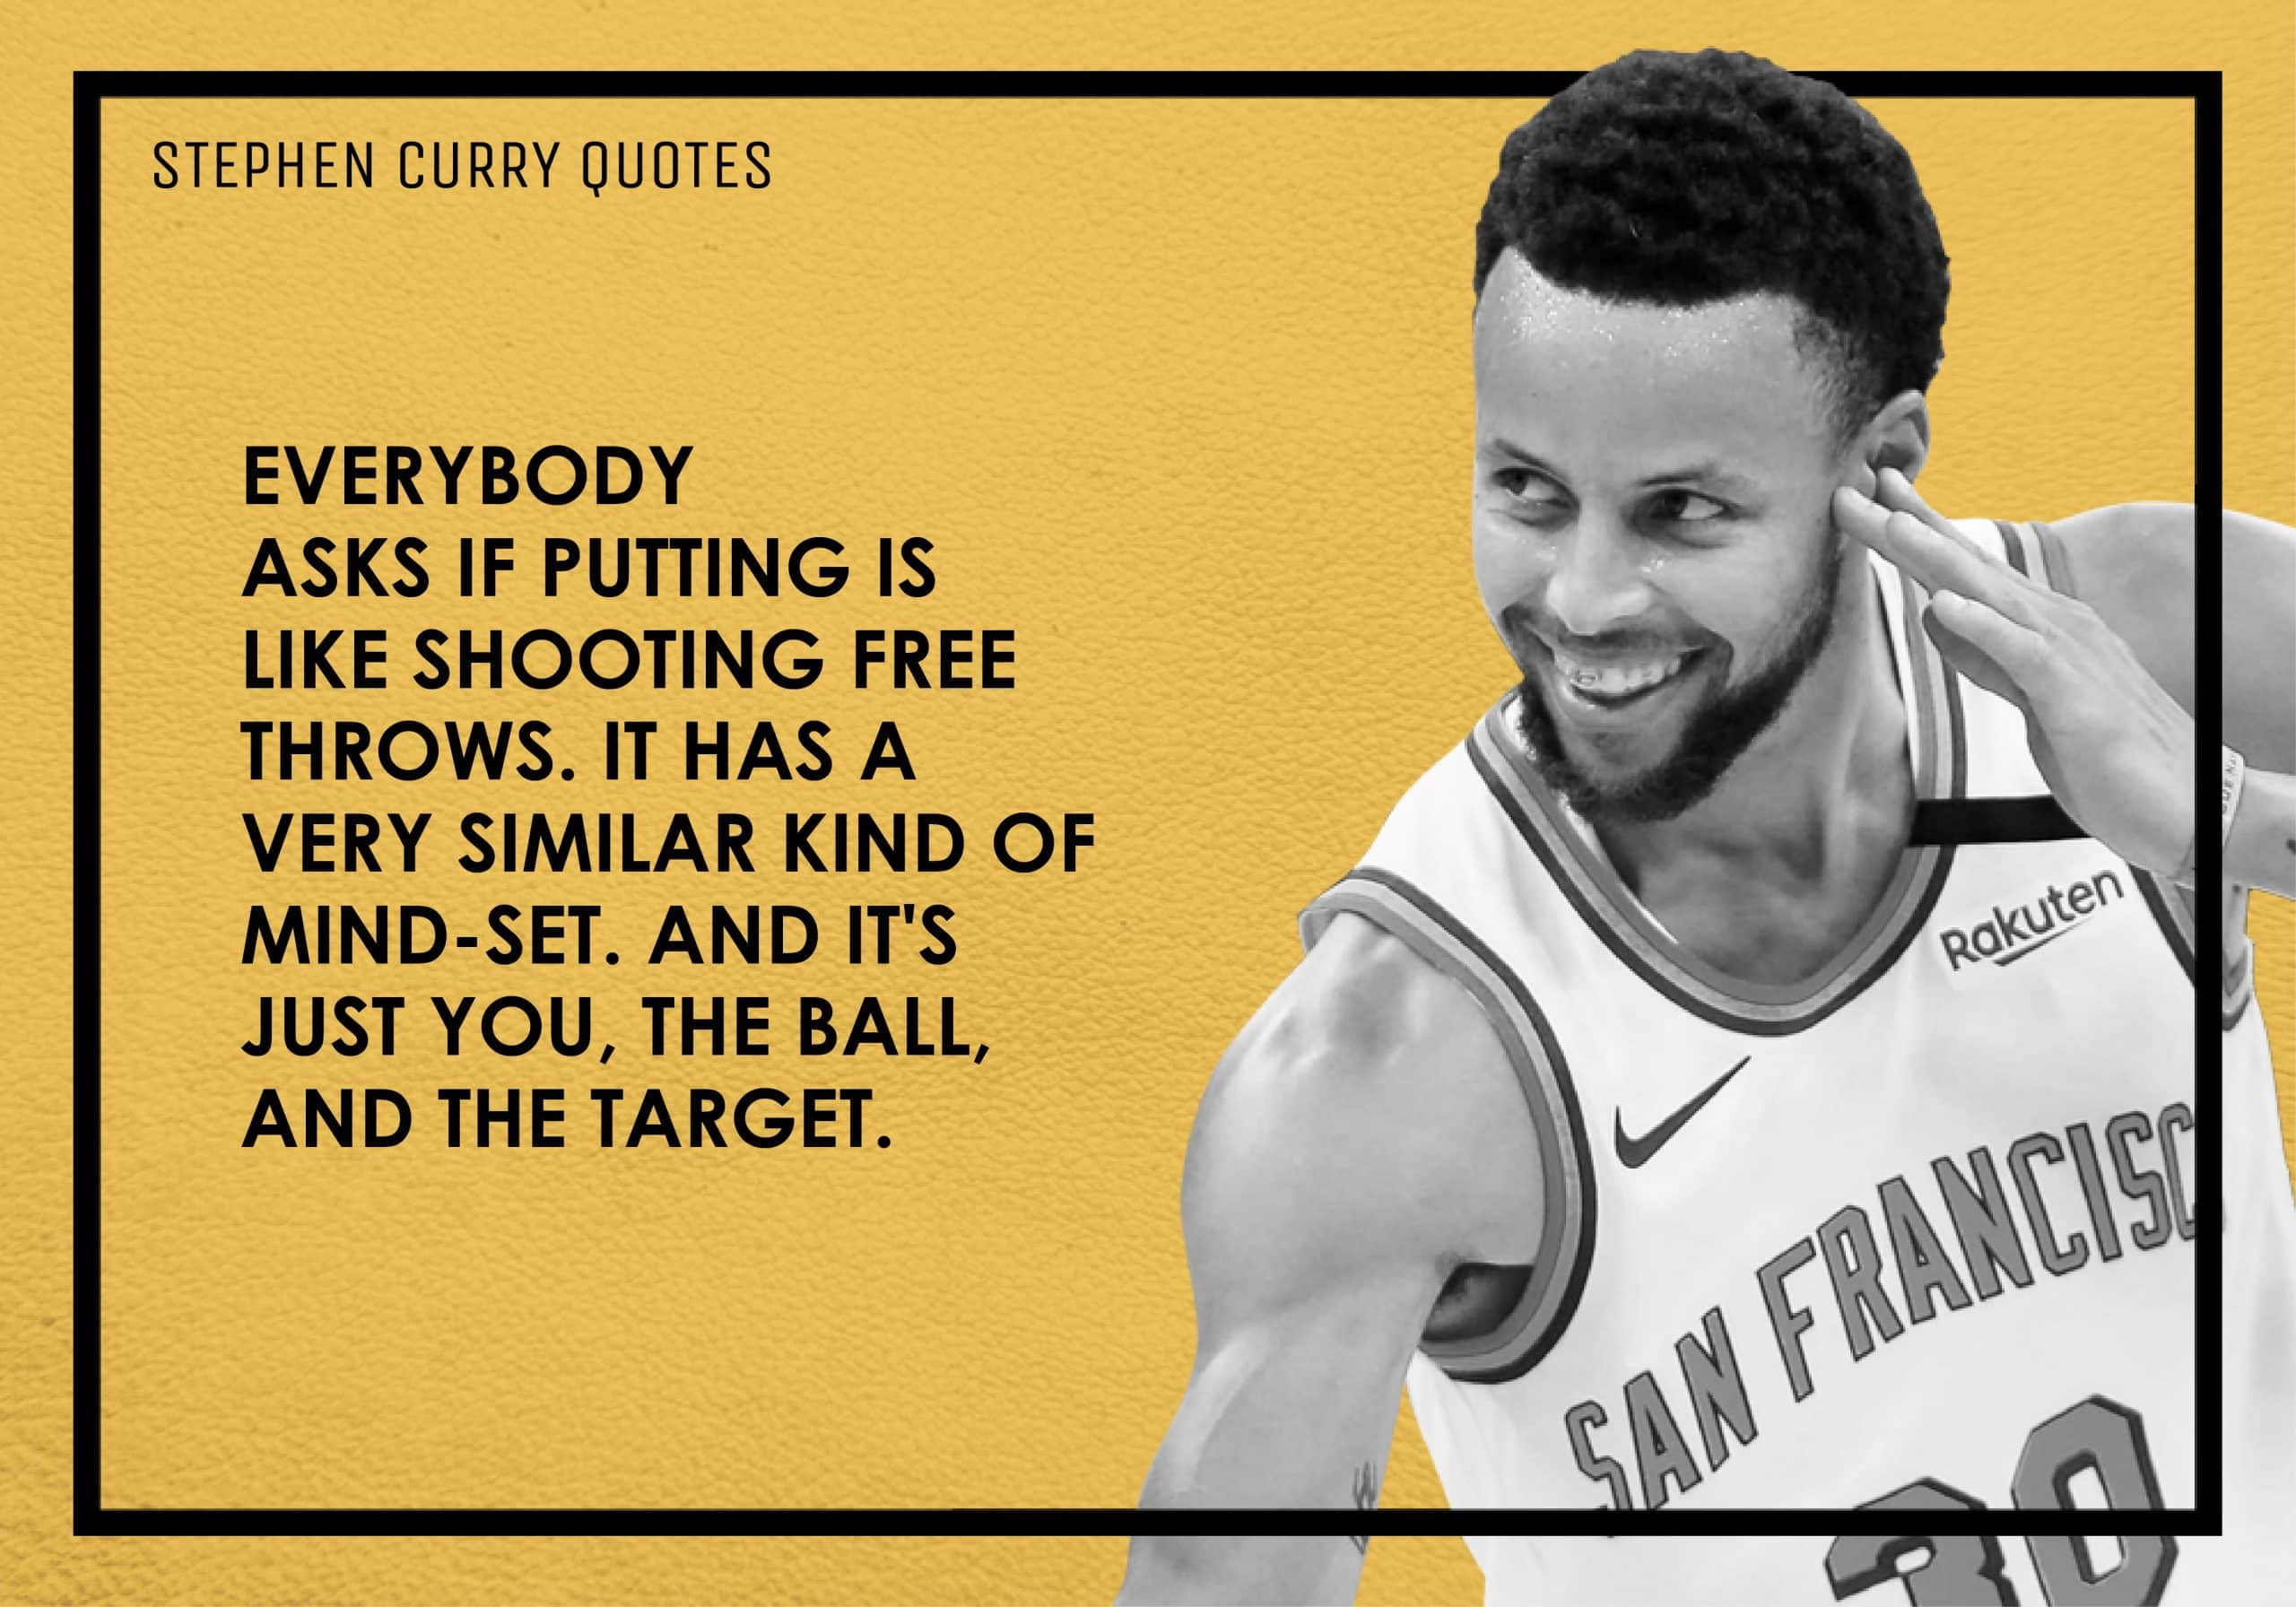 Stephen Curry Quotes (1)